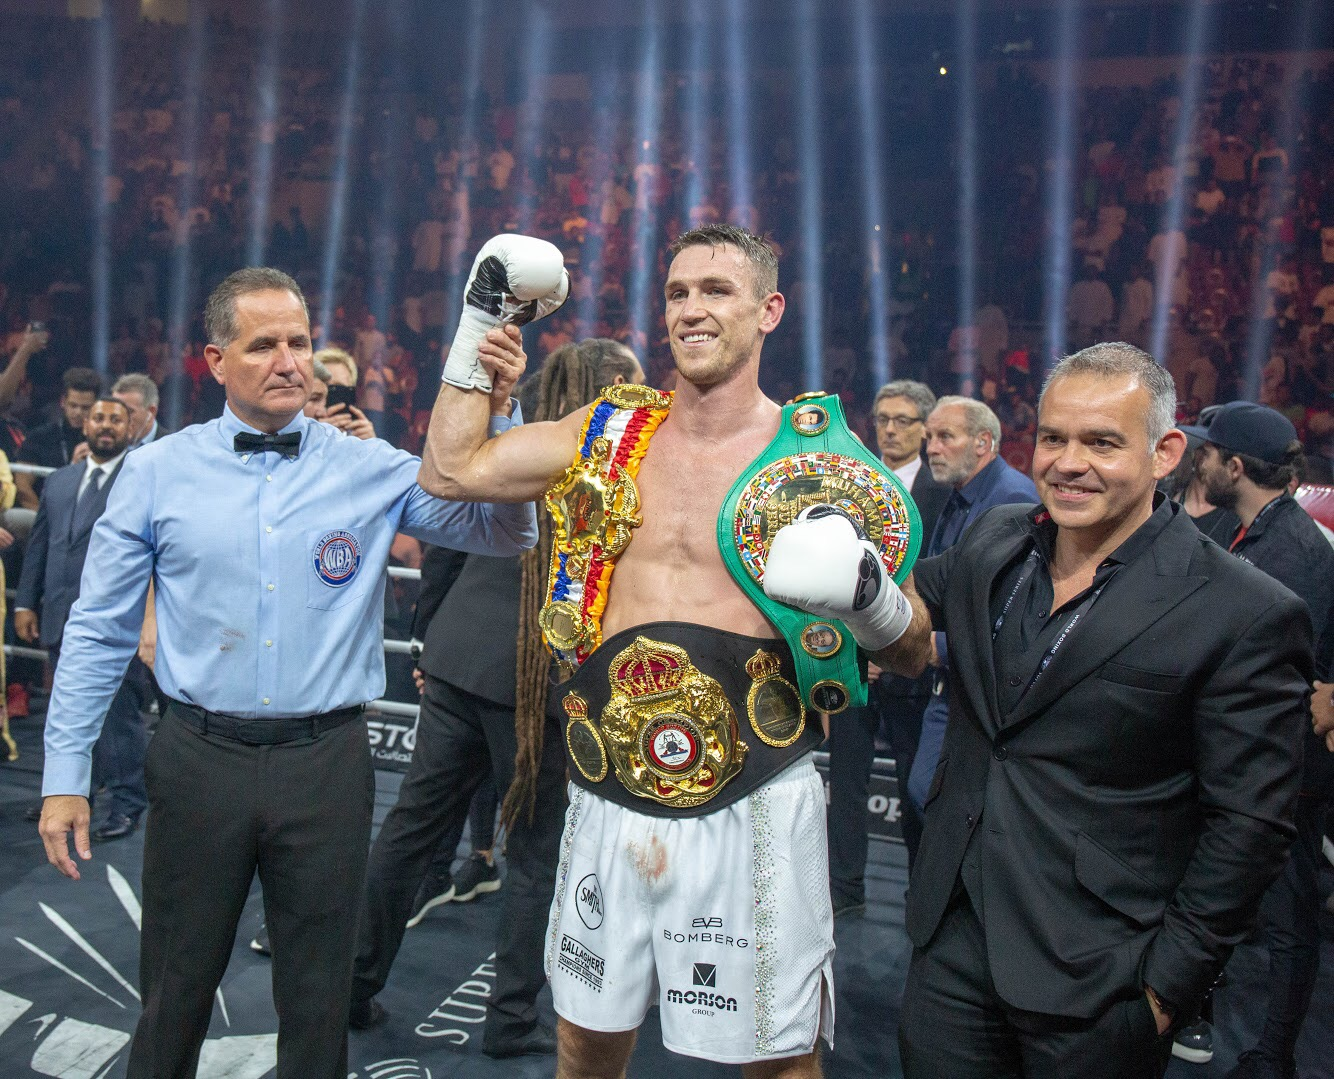 Callum Smith is the new WBA Super Champion with KO over Groves – World Boxing Association